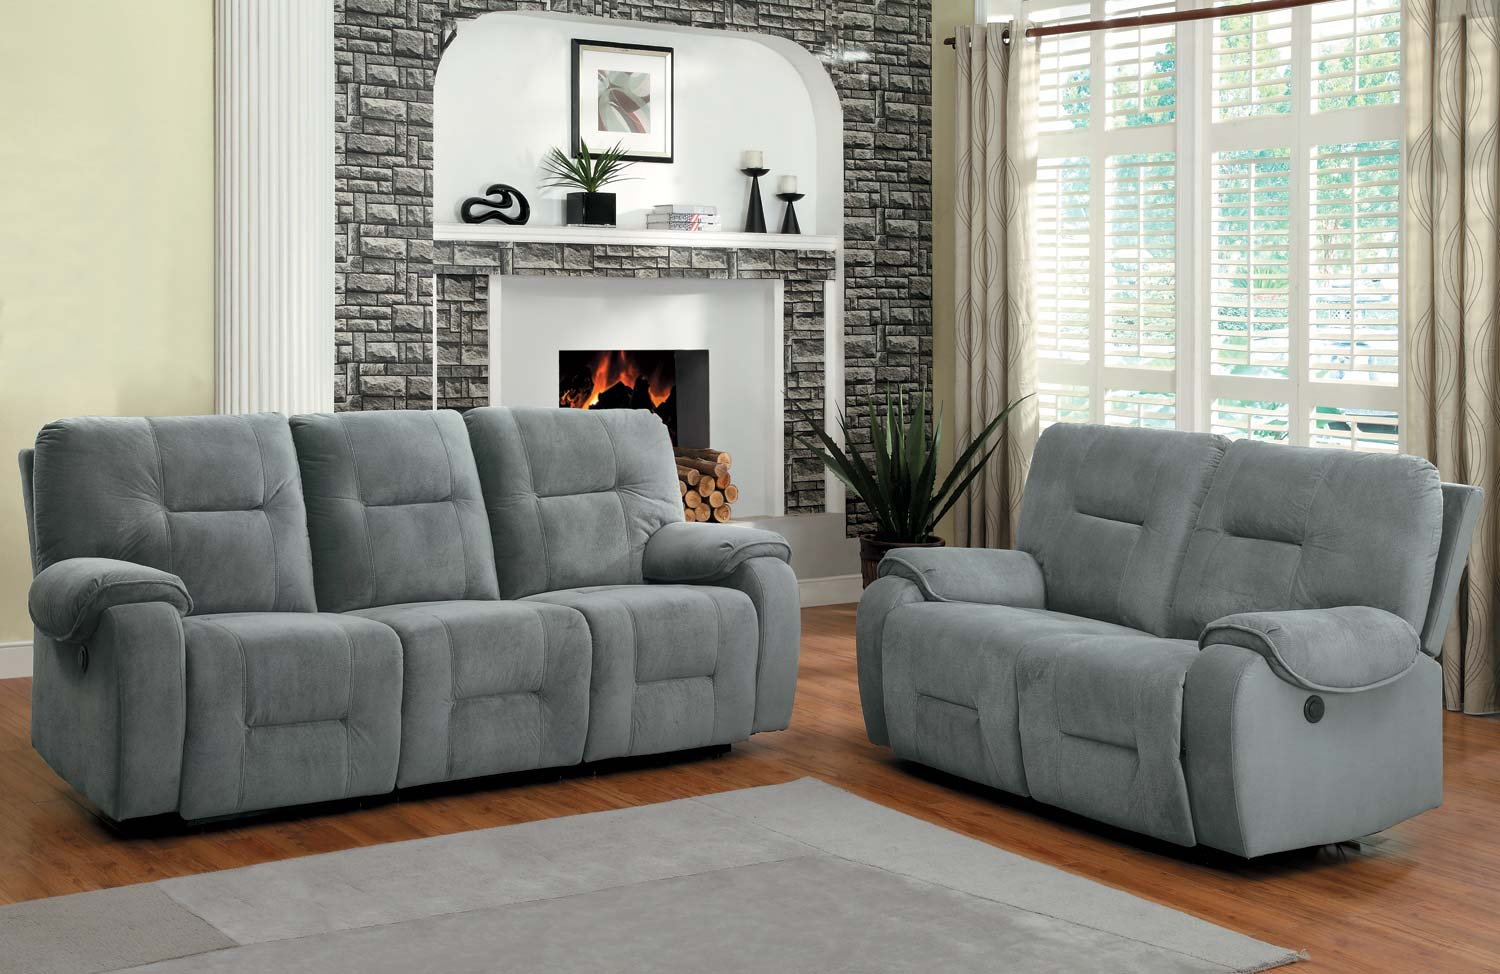 Homelegance Bensonhurst Power Reclining Sofa Set Blue  : HE U9634 3PW from www.homelegancefurnitureonline.com size 1500 x 974 jpeg 169kB